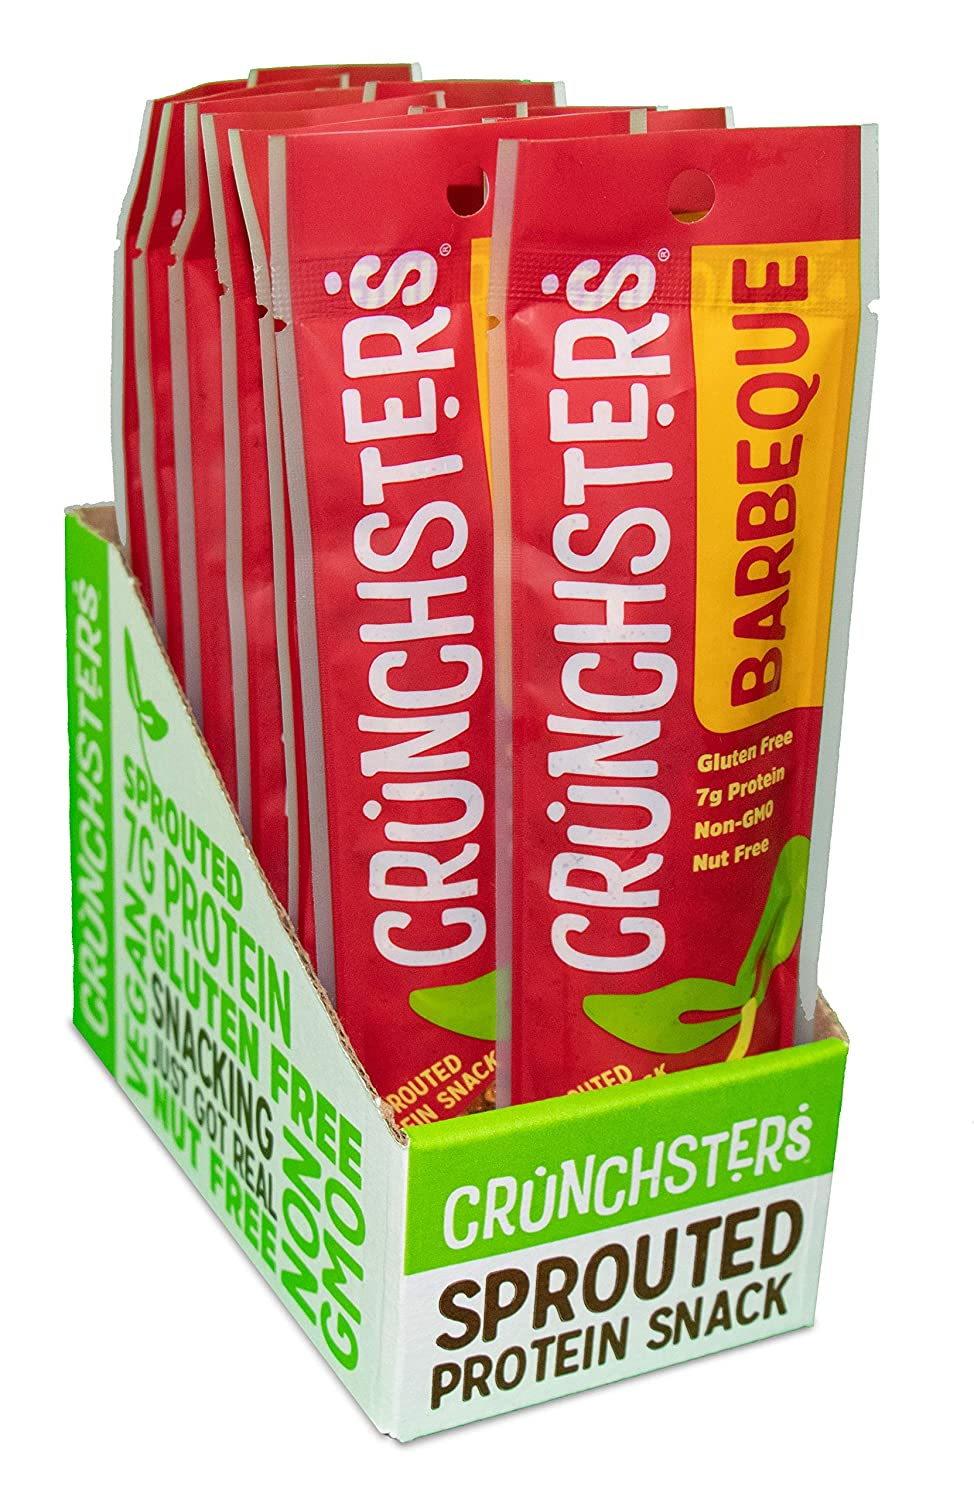 Crunchsters Paquetes de estuche: Amazon.com: Grocery ...